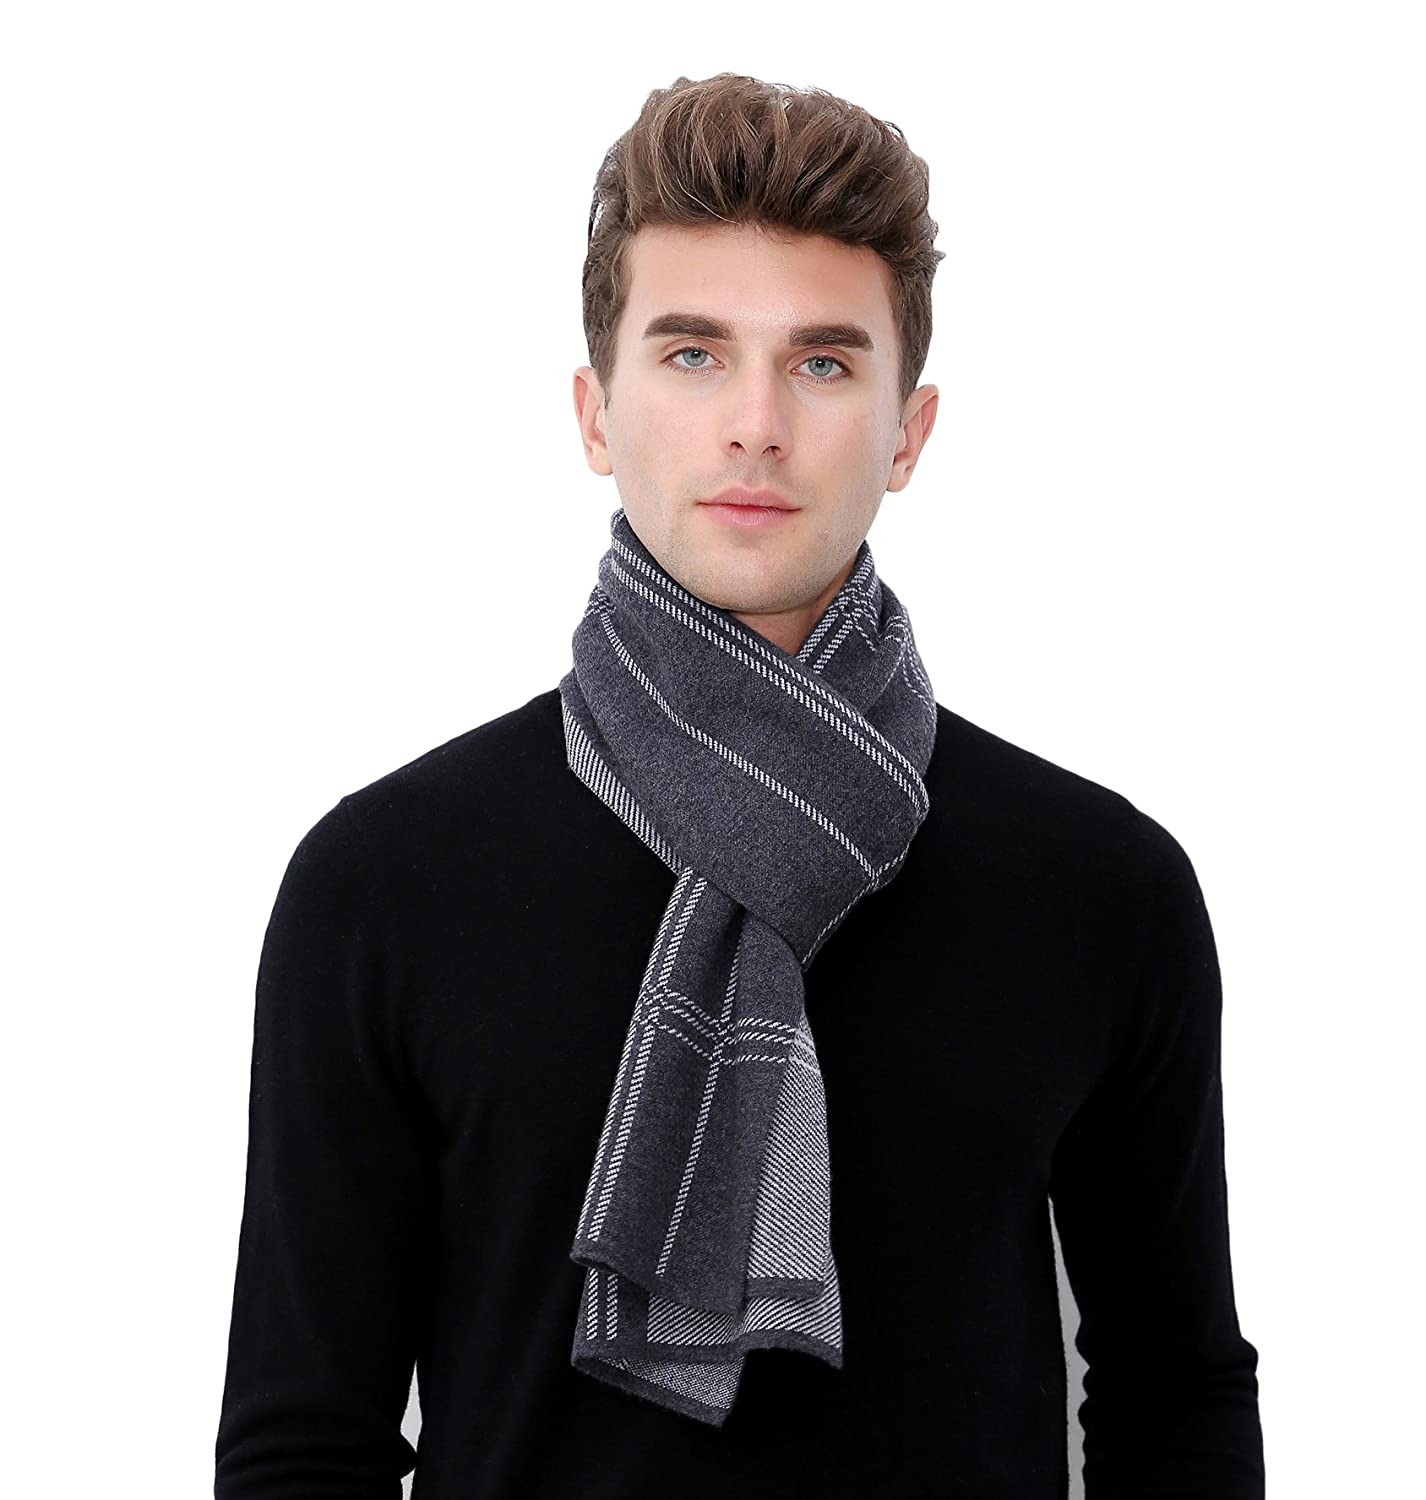 RIONA Men's Australian Merino Wool Stripe Knitted Scarf - Soft Warm Gentleman Neckwear with Gift Box(Black) RIW9634Black